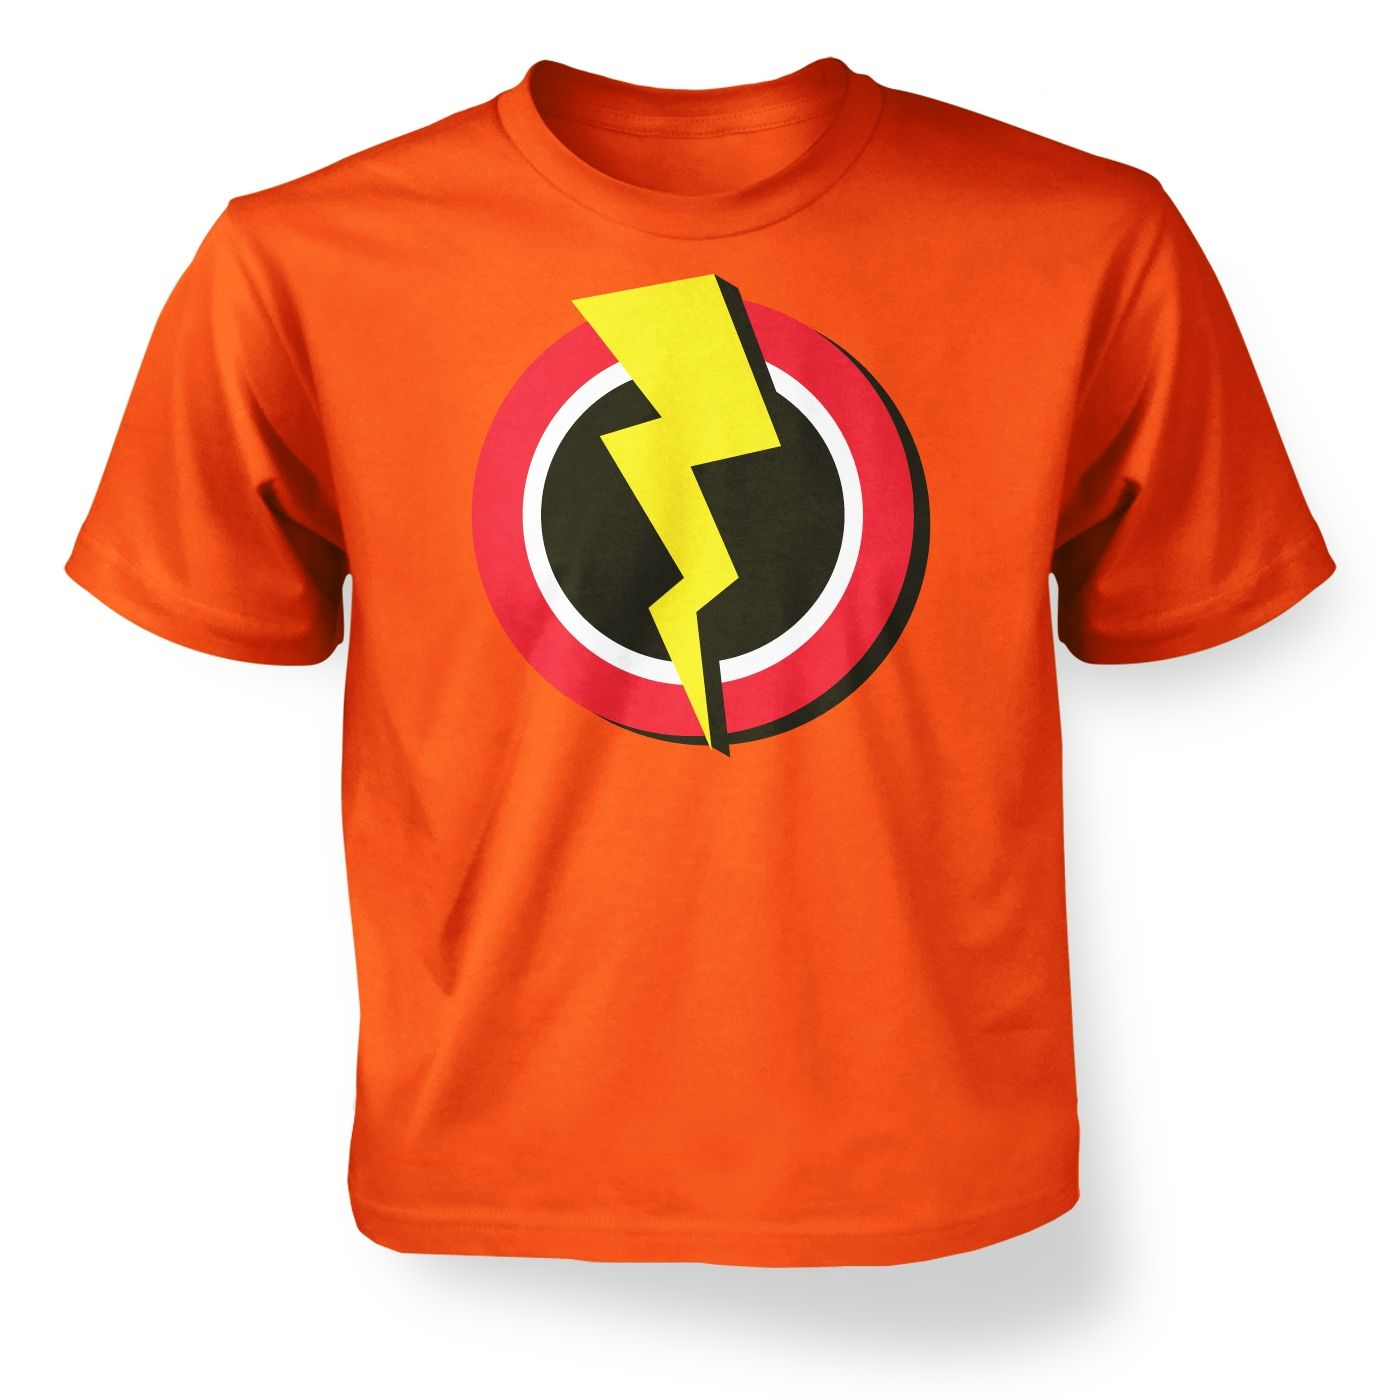 Kids will get a kick out of wearing the latest meme t-shirt, which is a fun way for them to express themselves and their individuality. Everyday Comfort and Durability When buying kid's shirts, comfort and durability are important elements.